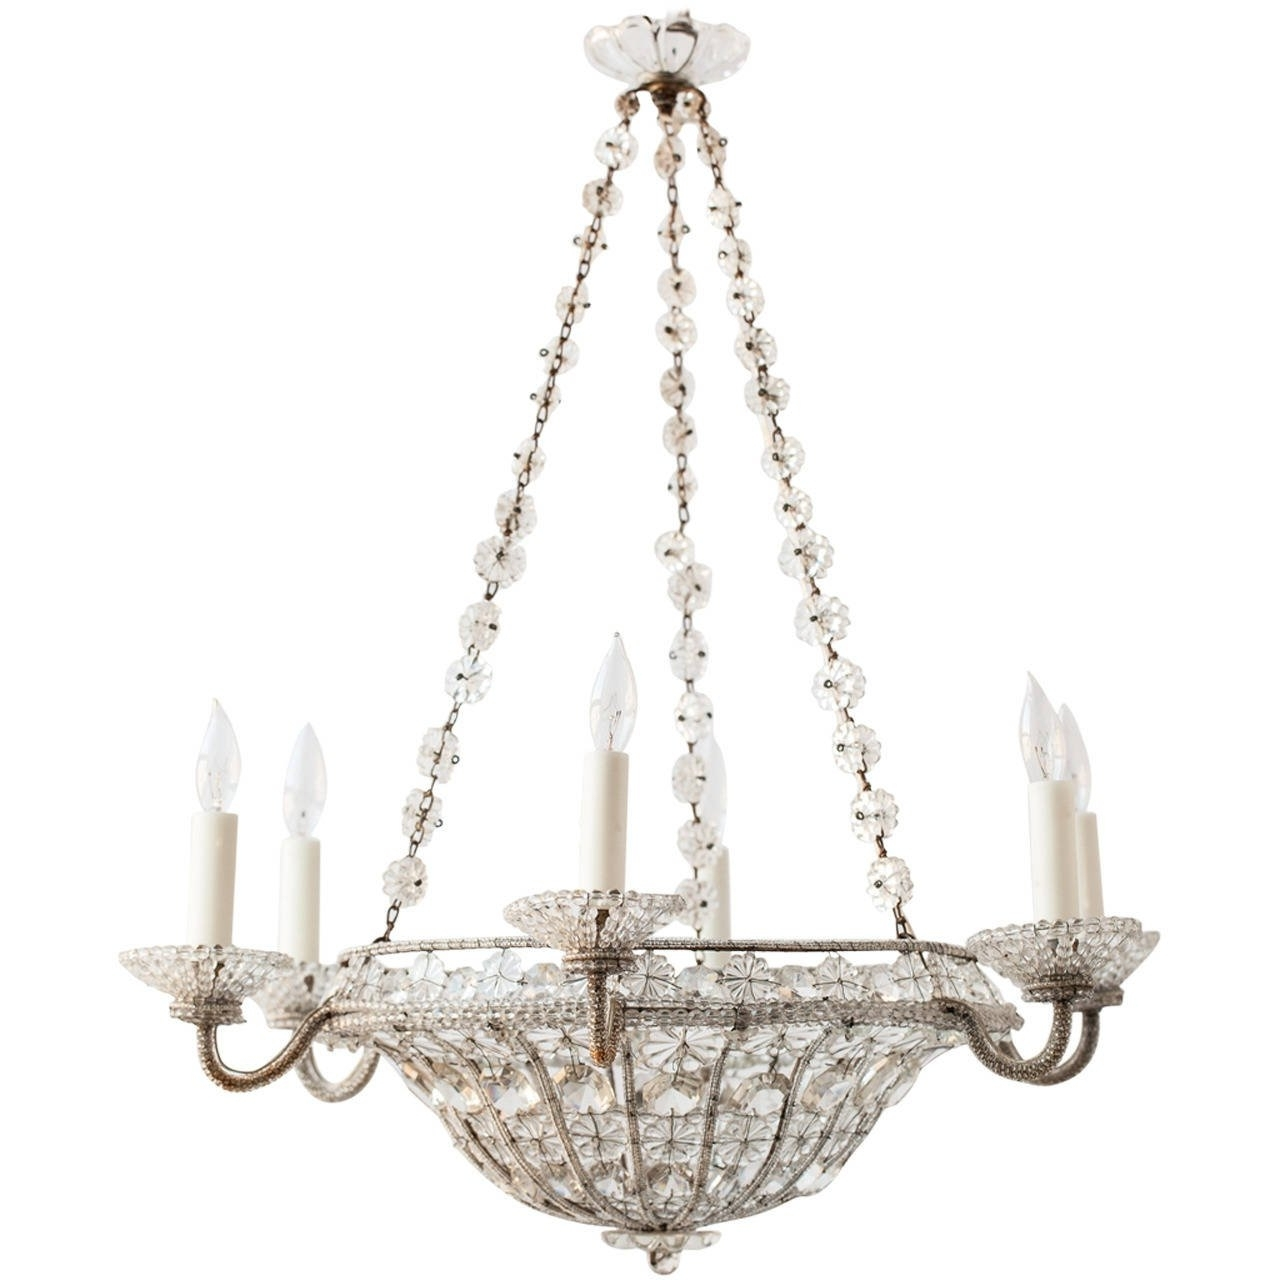 Best And Newest French Chandelier With Regard To French Chandelier In A Basket Shape With Crystal Flowers, Circa  (View 4 of 15)